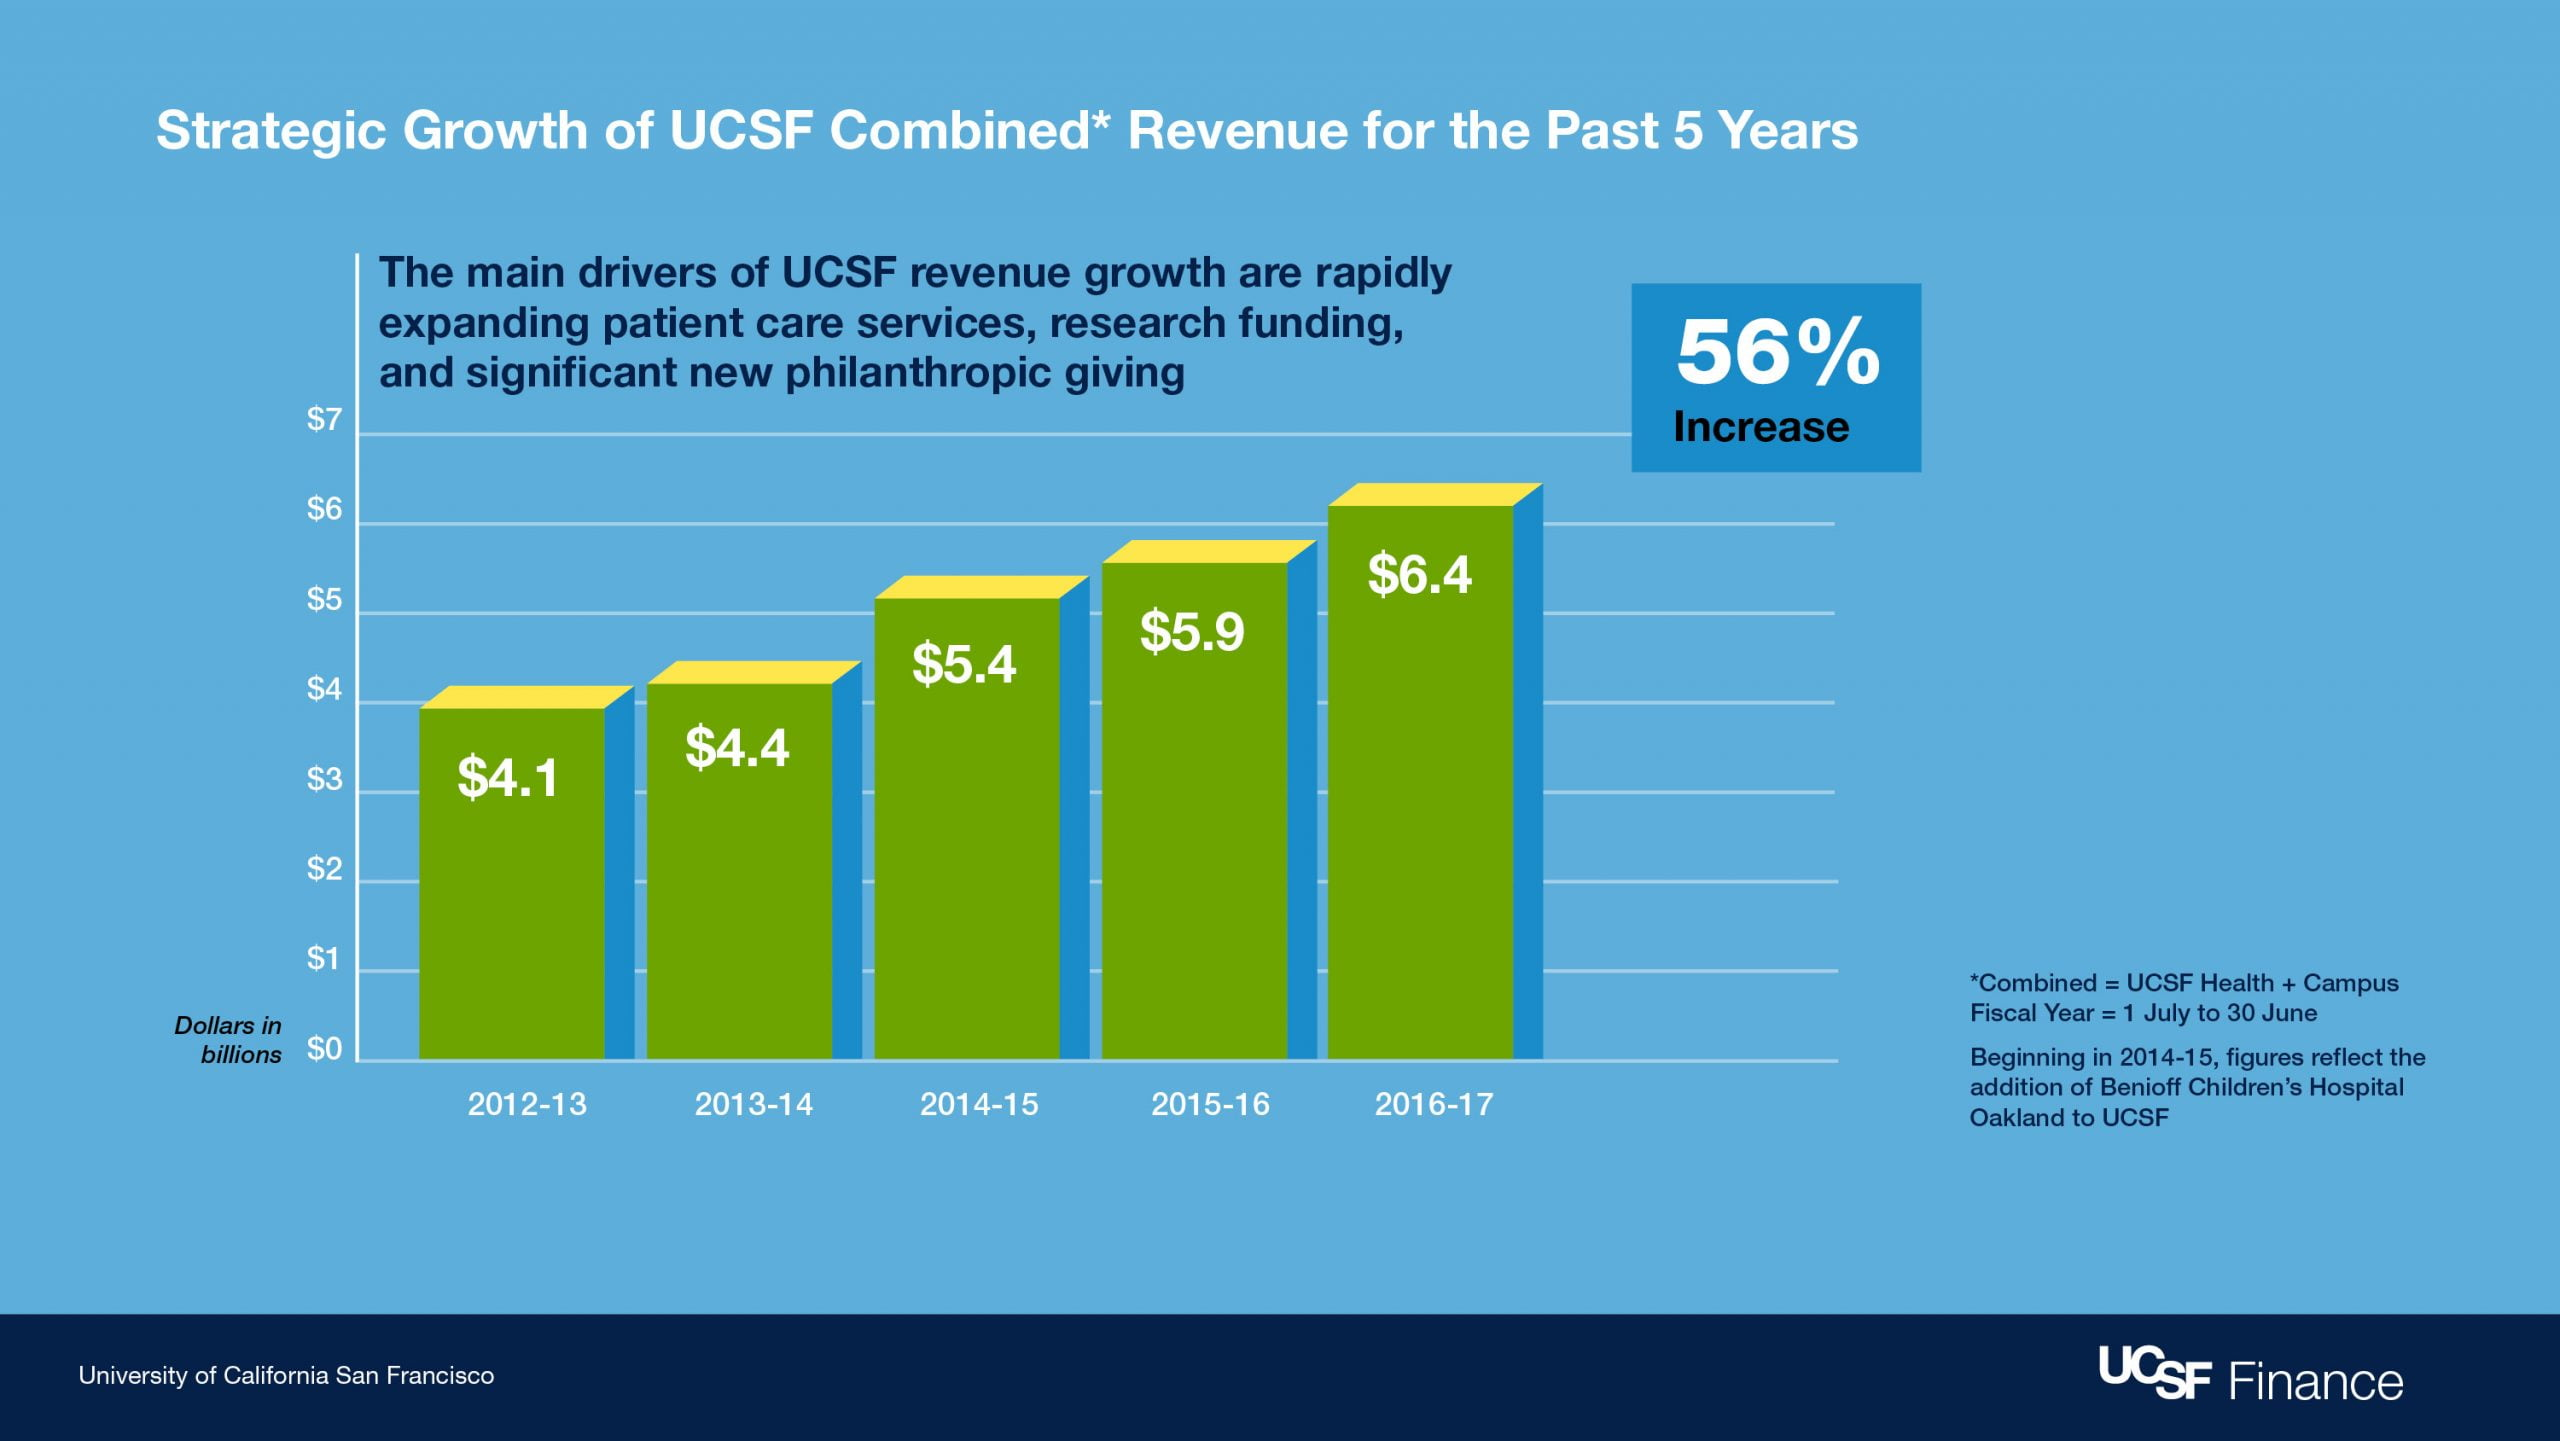 We already have the financial results of the second quarter of fiscal year 2012-13, it continues to grow